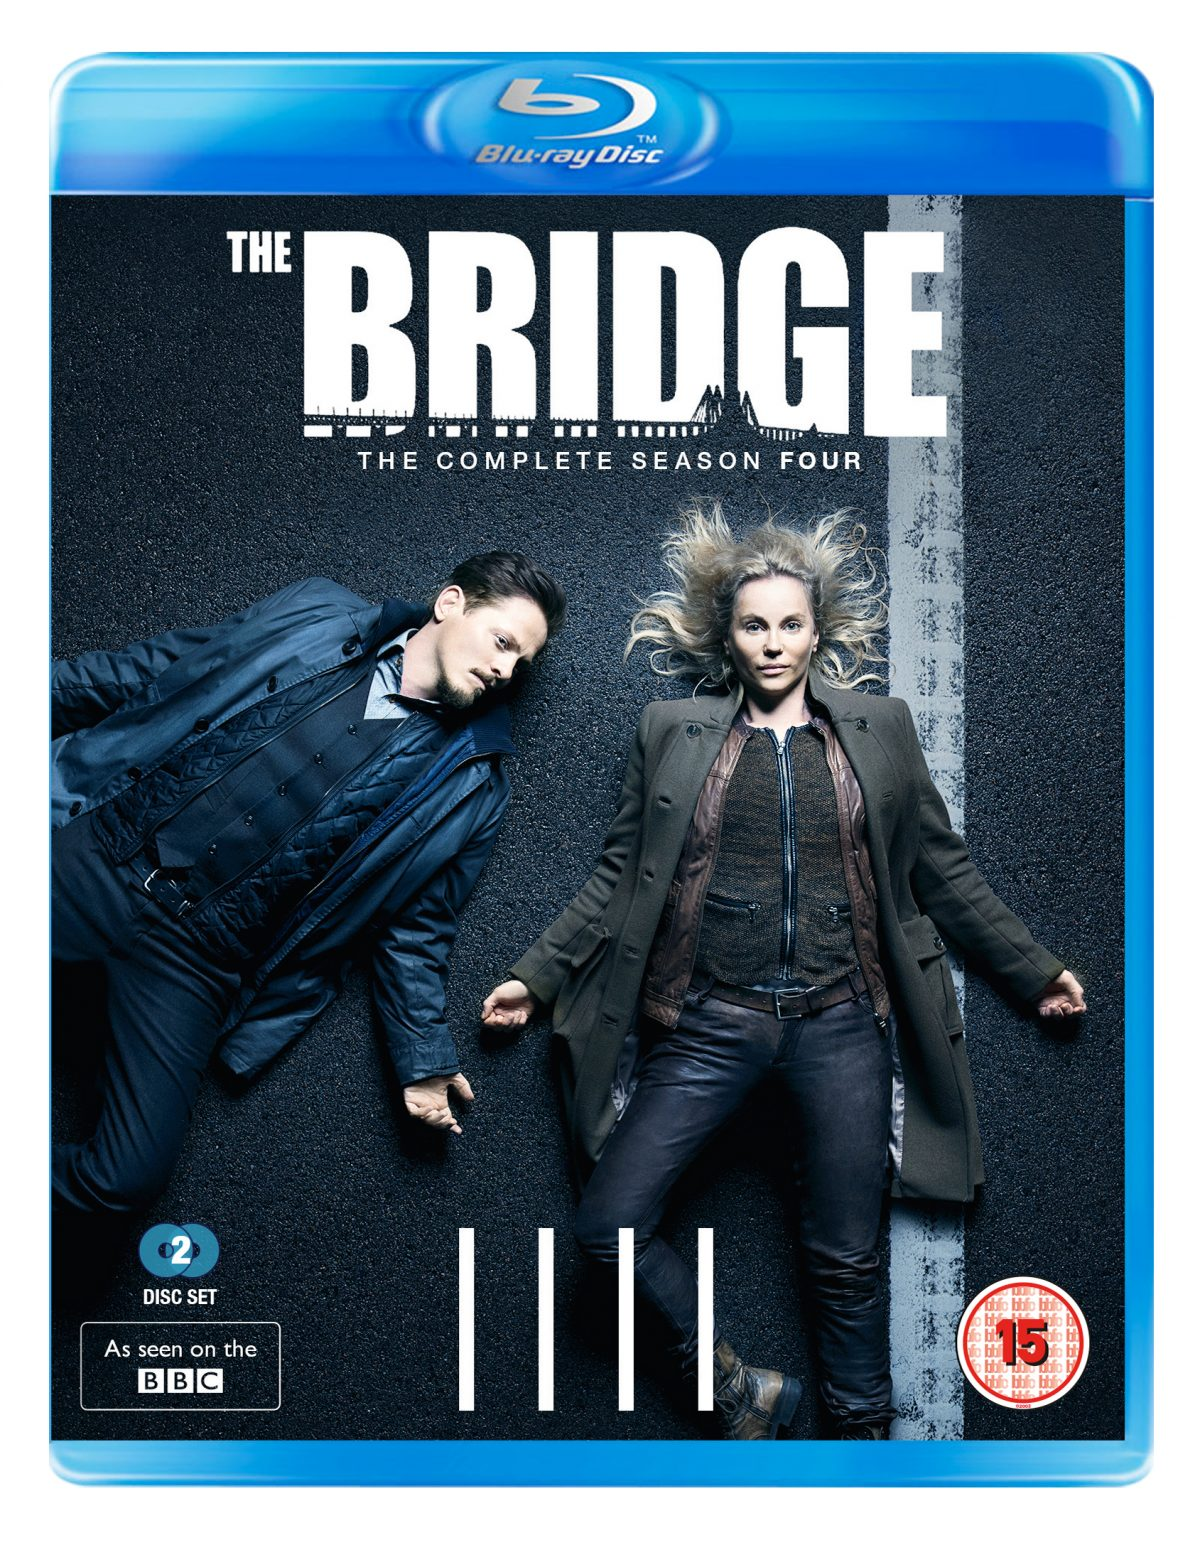 DVD & Blu-ray release of the final season of the BAFTA-winning crime drama The Bridge. The complete Season 4 and the Nordic Noir Classics Seasons 1-4 collection